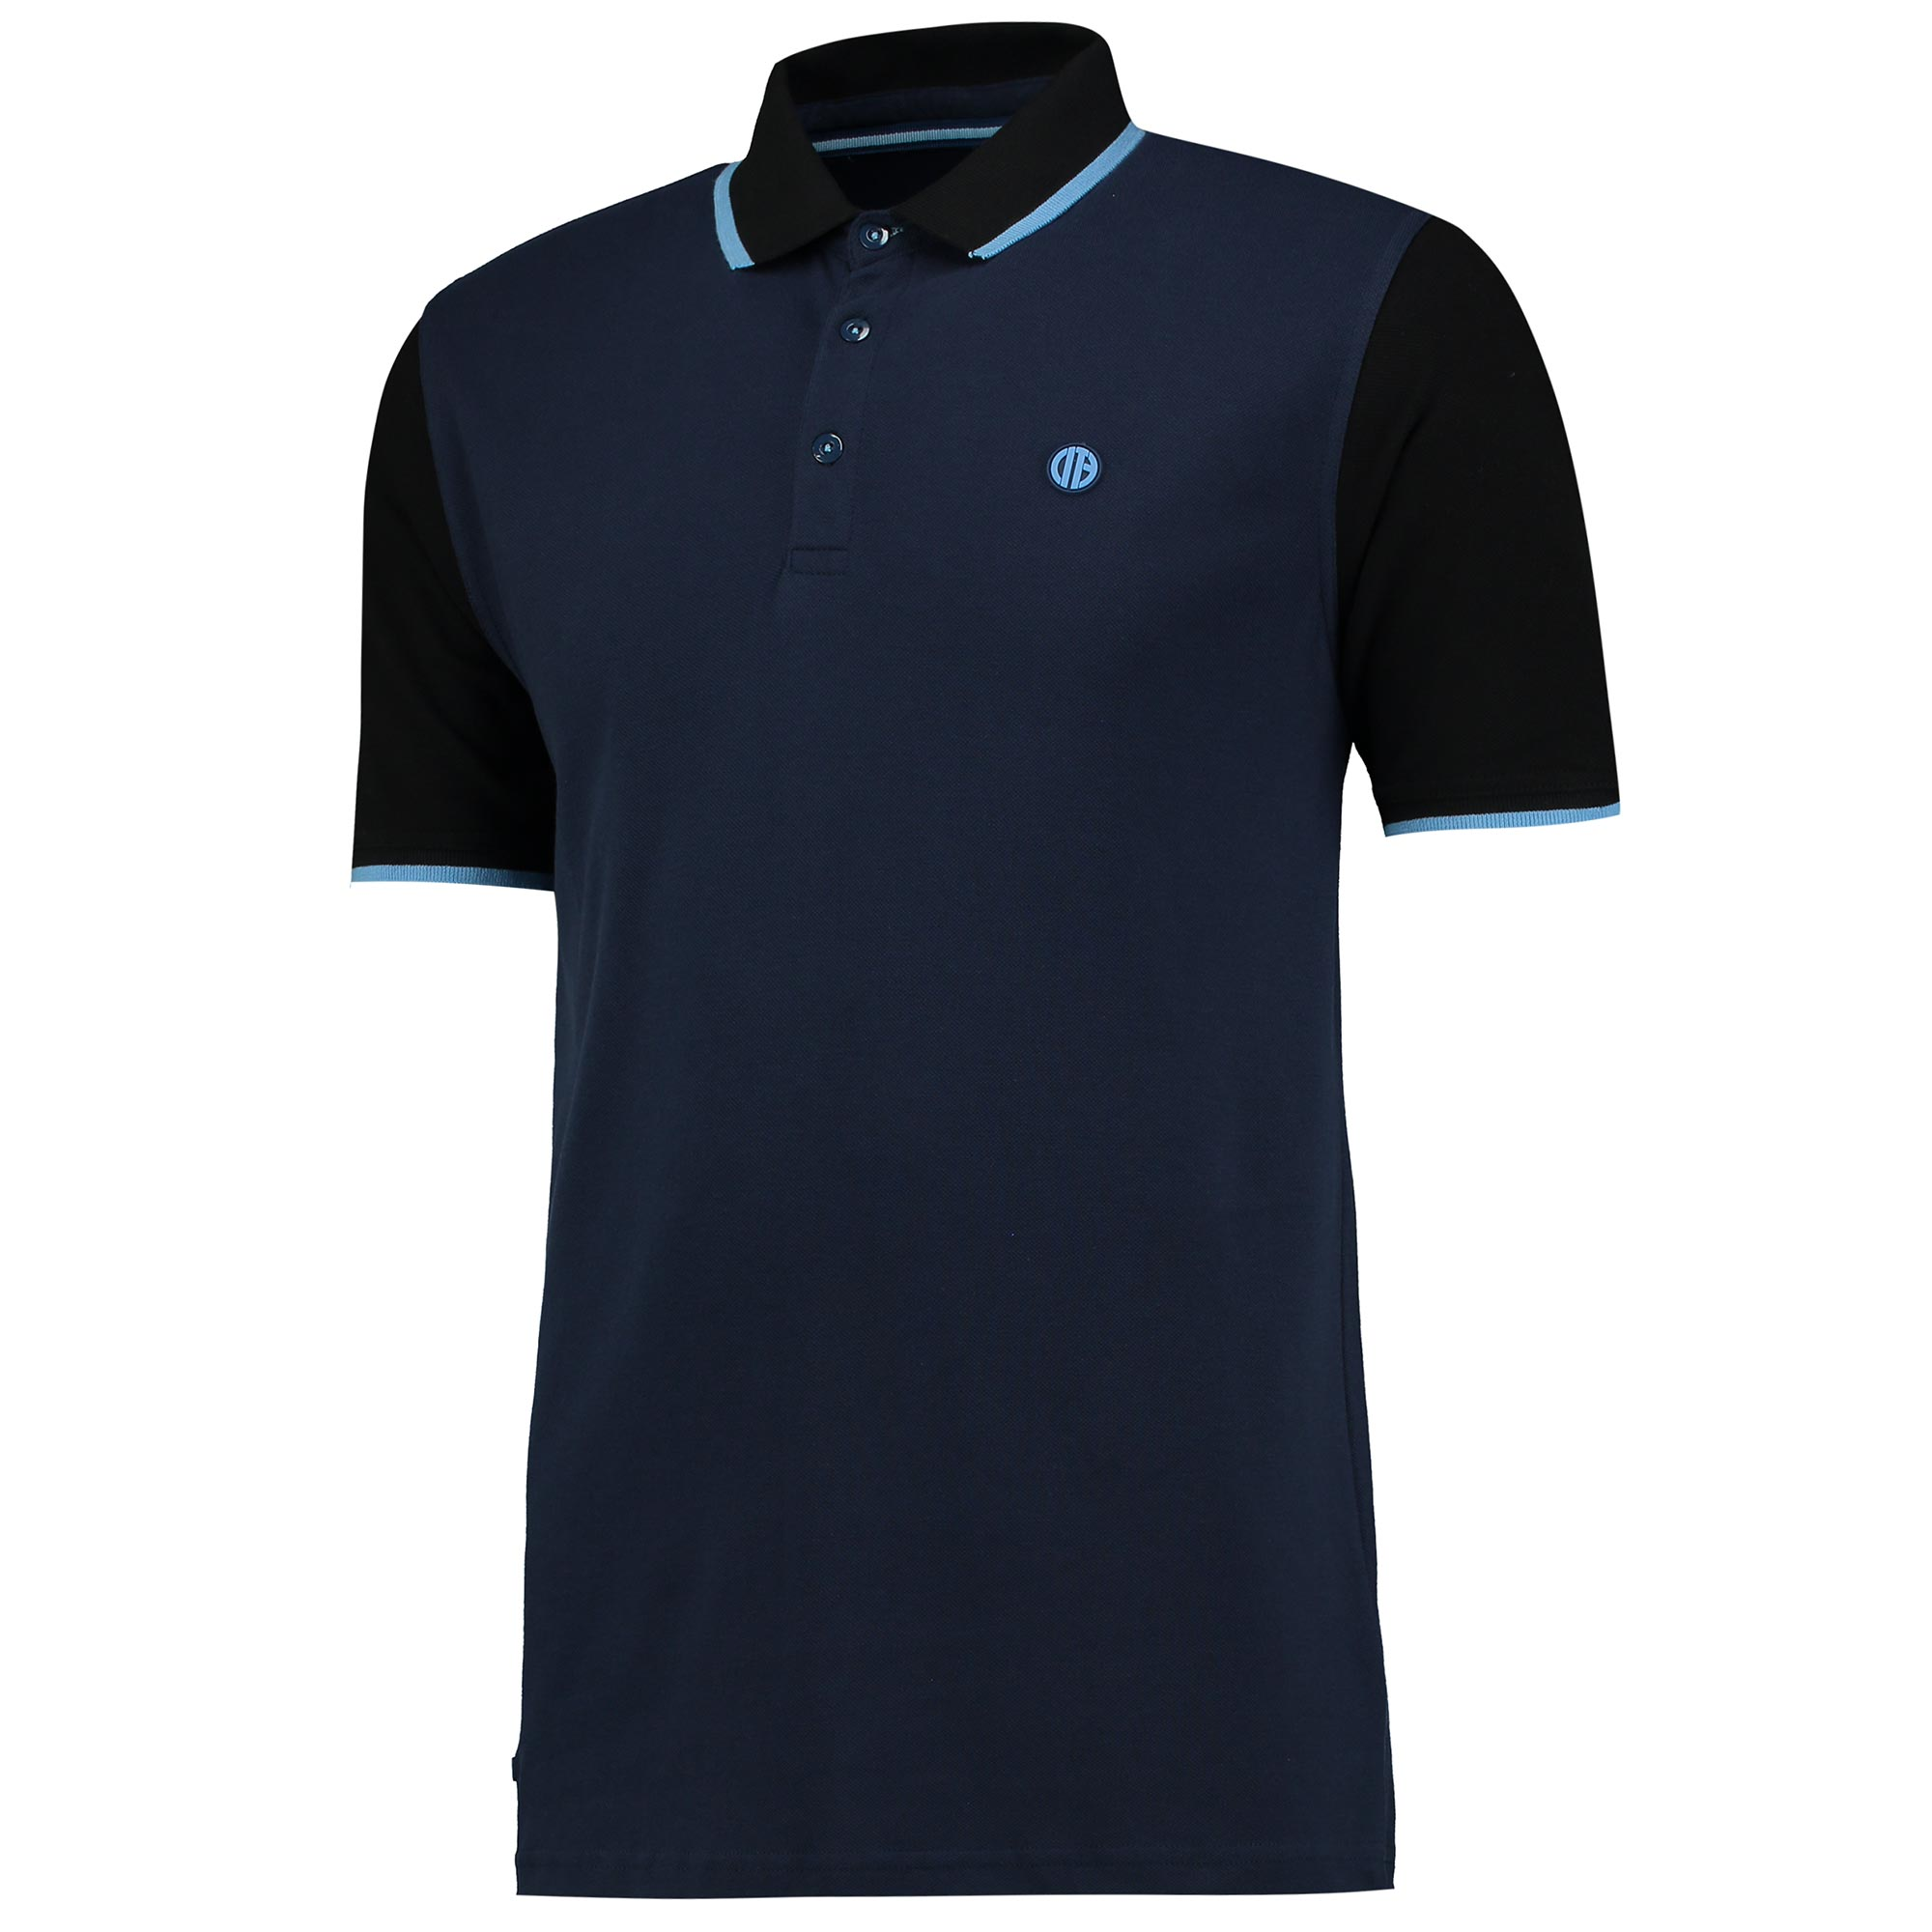 Manchester City Terrace Contrast Sleeve Polo - Navy/Charcoal